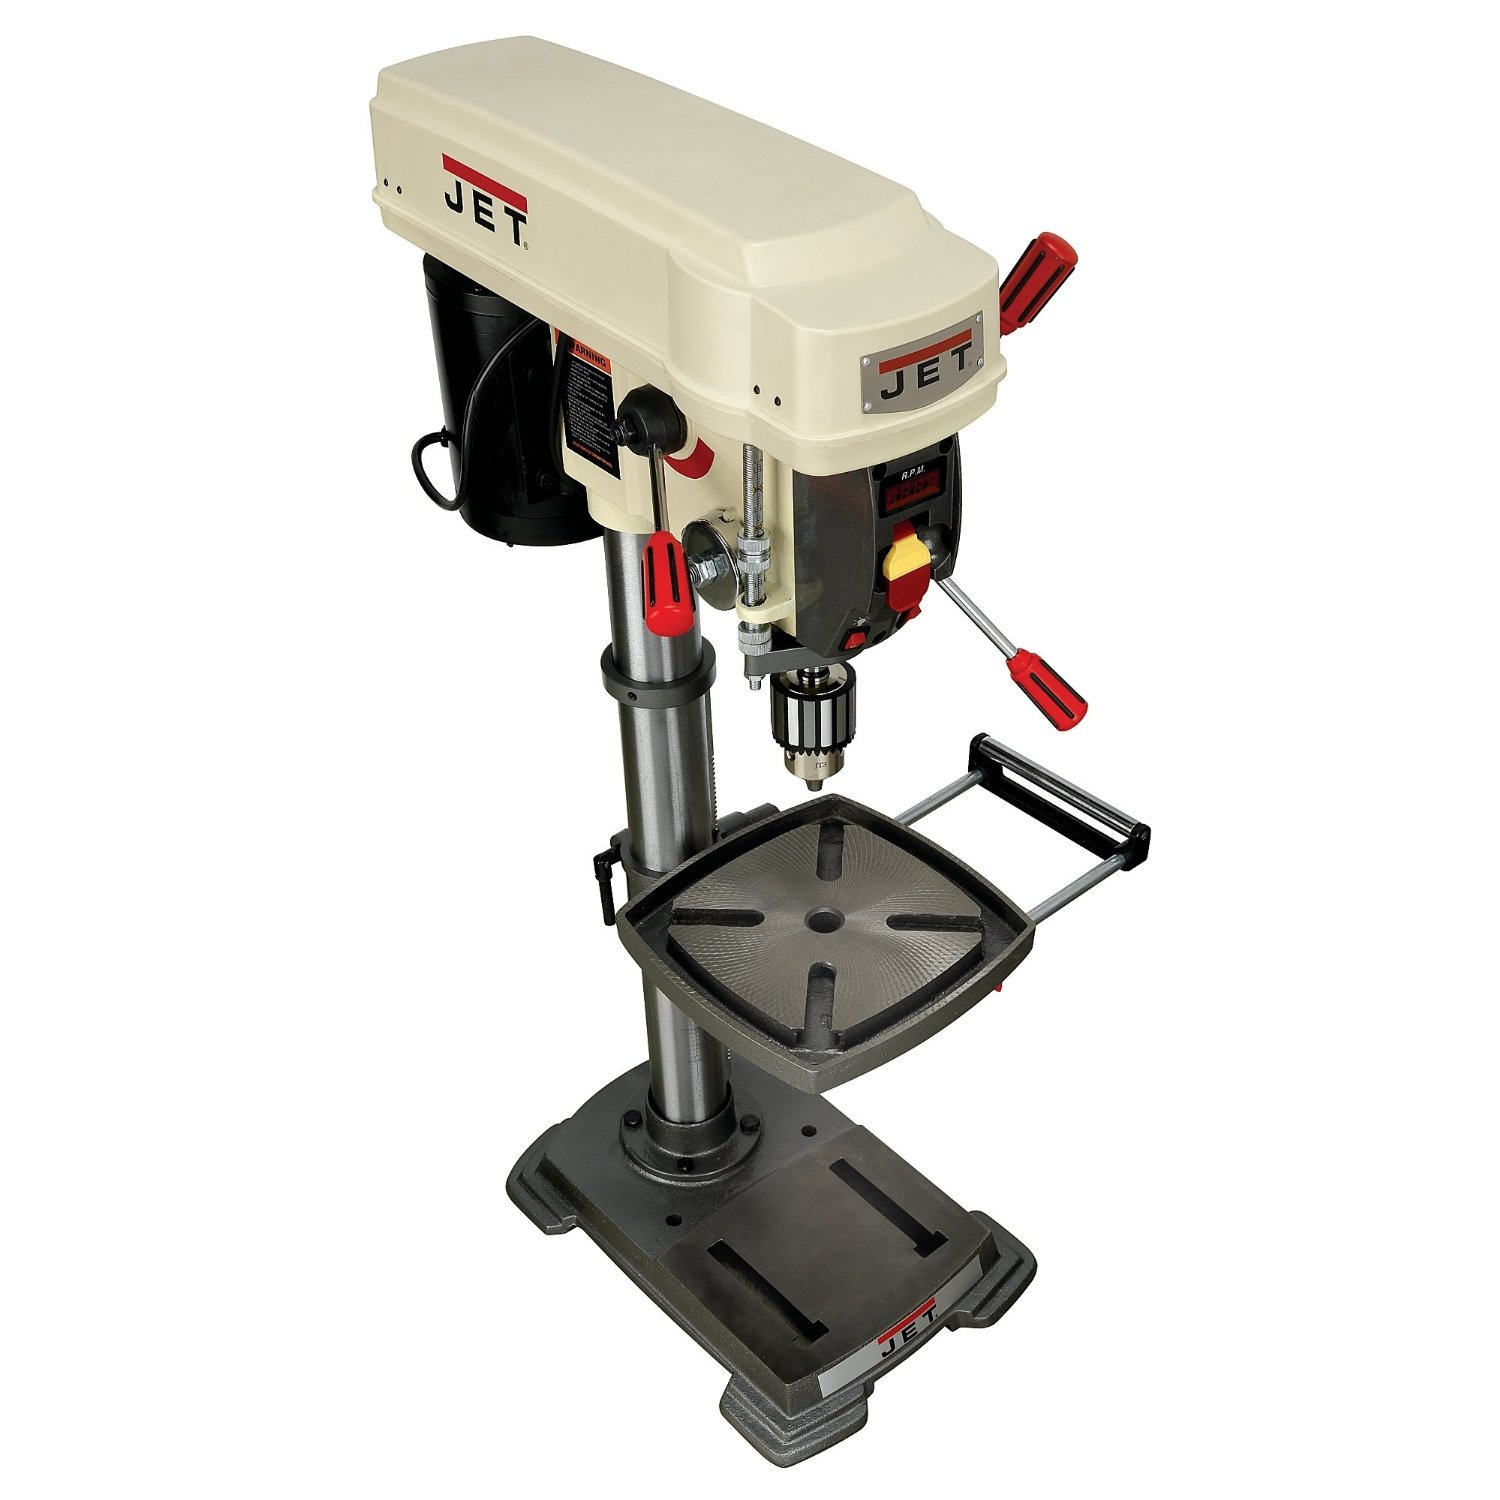 Beste Boormachine Best 10 Benchtop Drill Press Tools Unbiased Reviews 2019